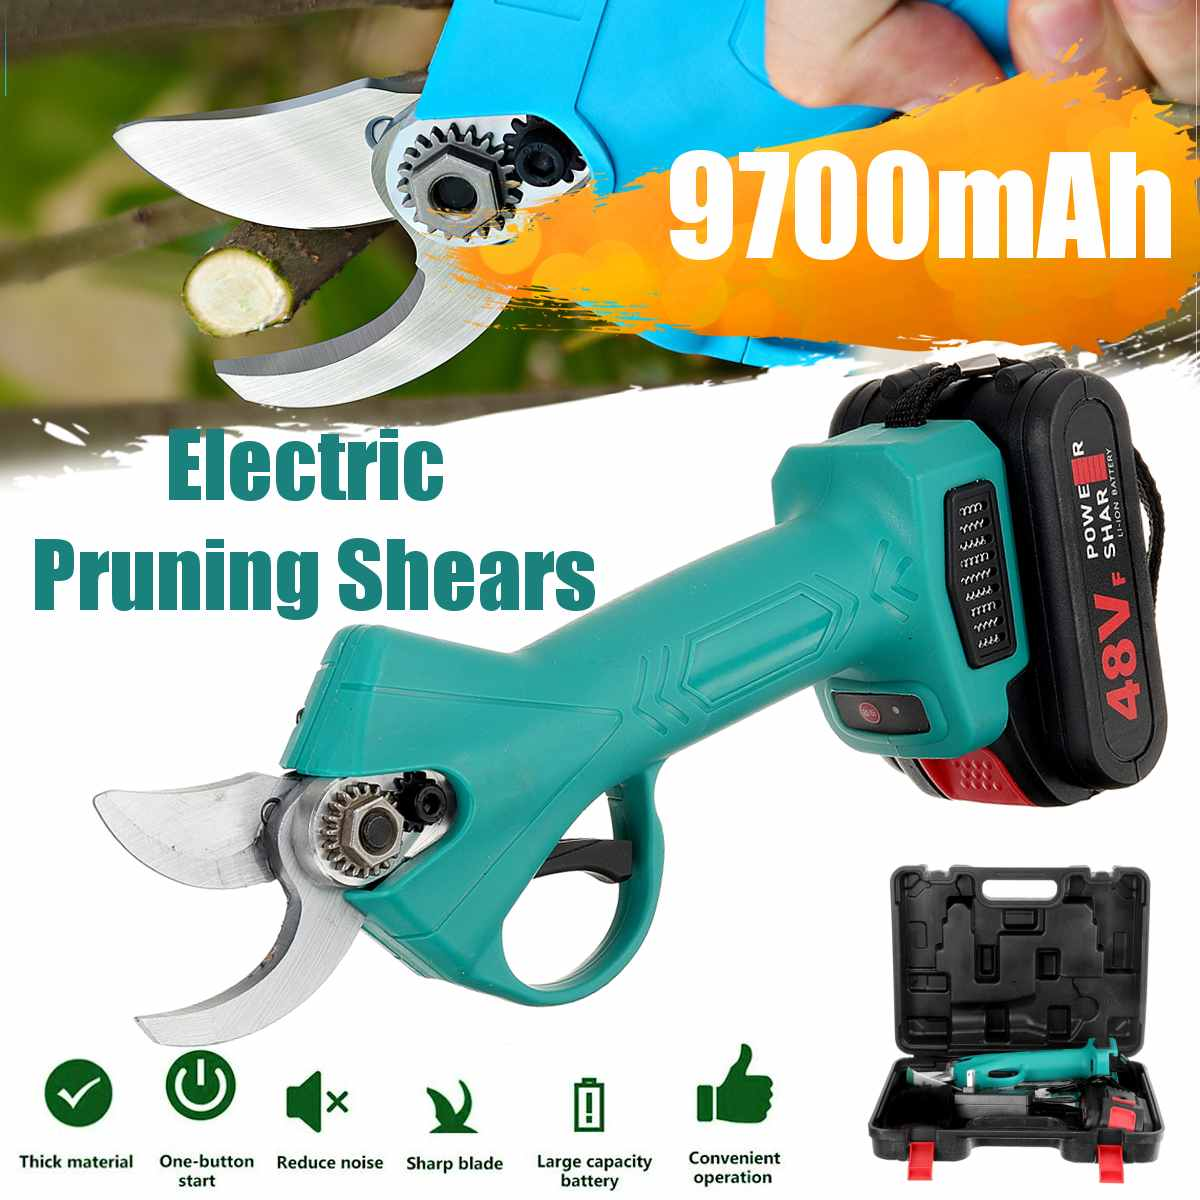 Electric Pruning Scissors Pruning Shears Garden Pruner Secateur Branch Cutter Cutting Tool with 1pc Rechargeable Battery